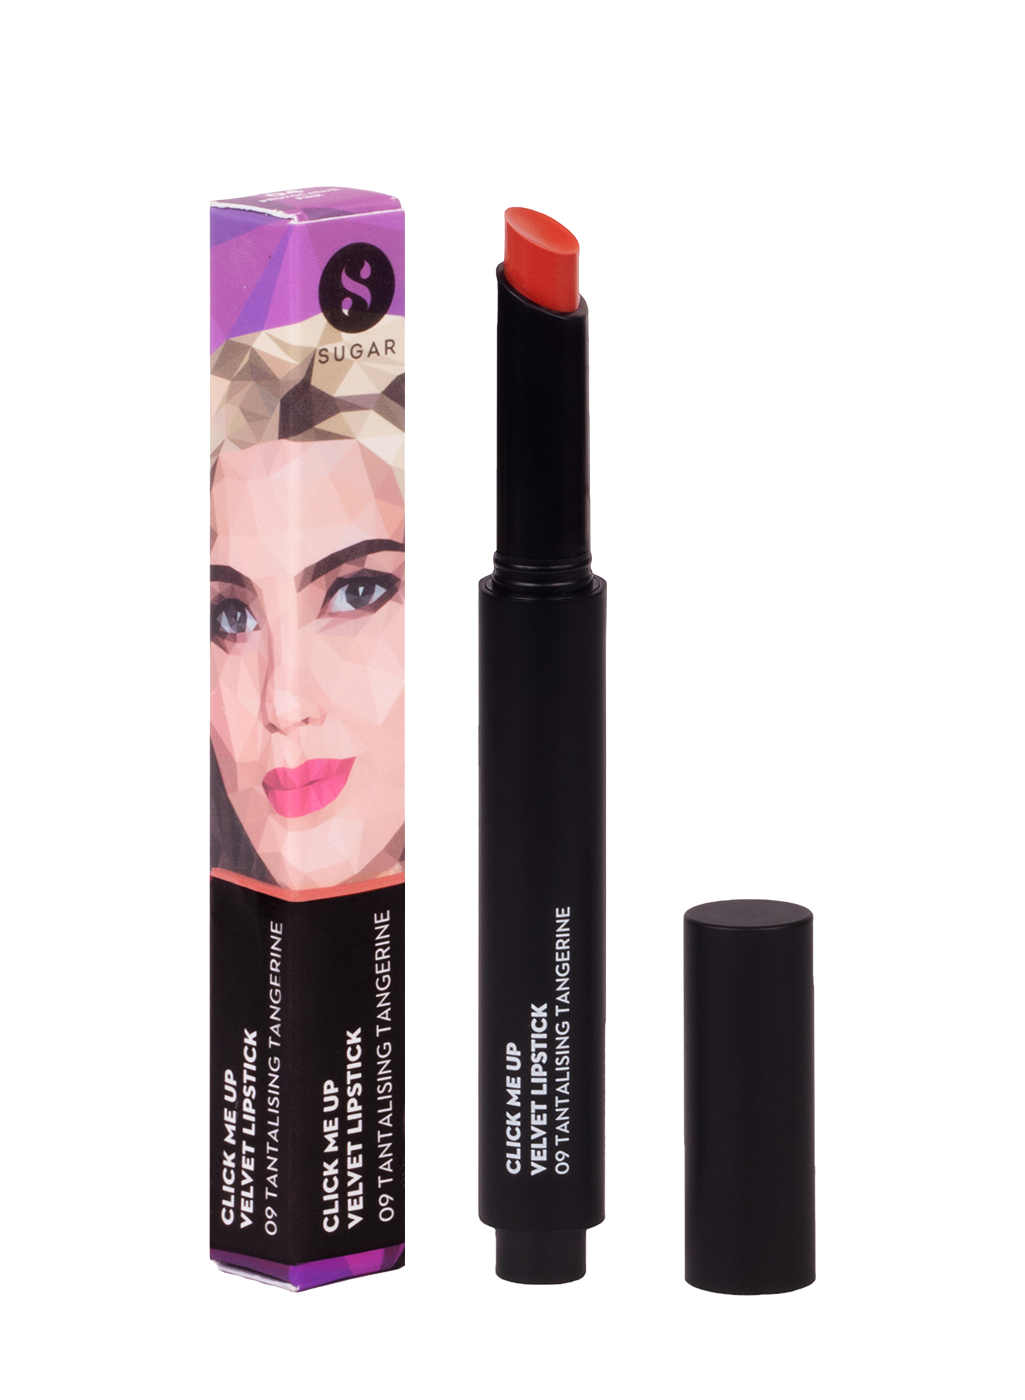 SUGAR Click Me Up Velvet Lipstick - 09 Tantalising Tangerine (Bright Orange with Hints of Red)